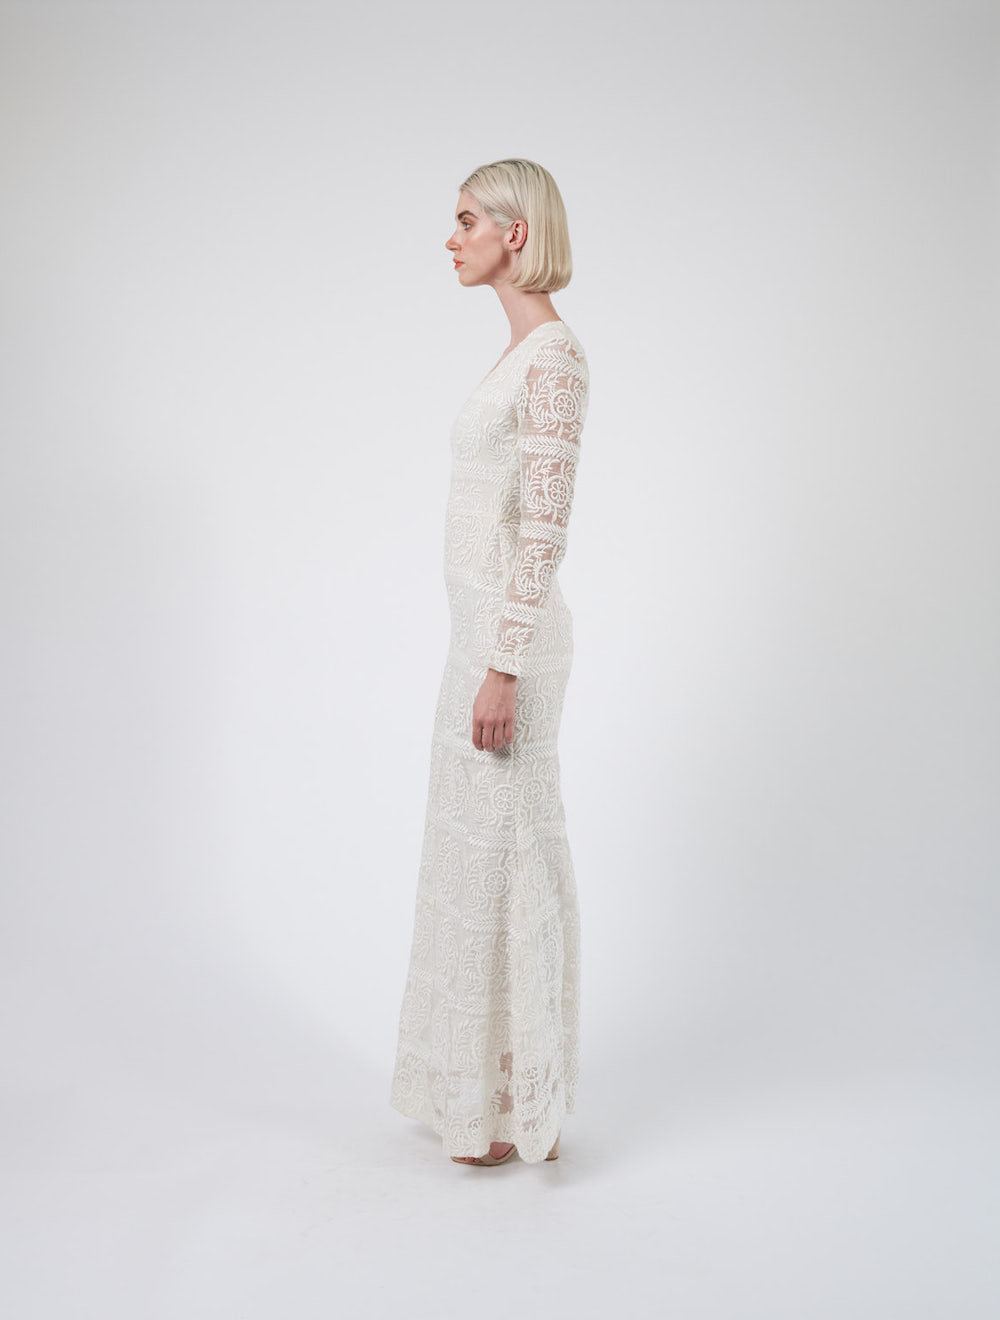 White Long Sleeve Evening Dress Side